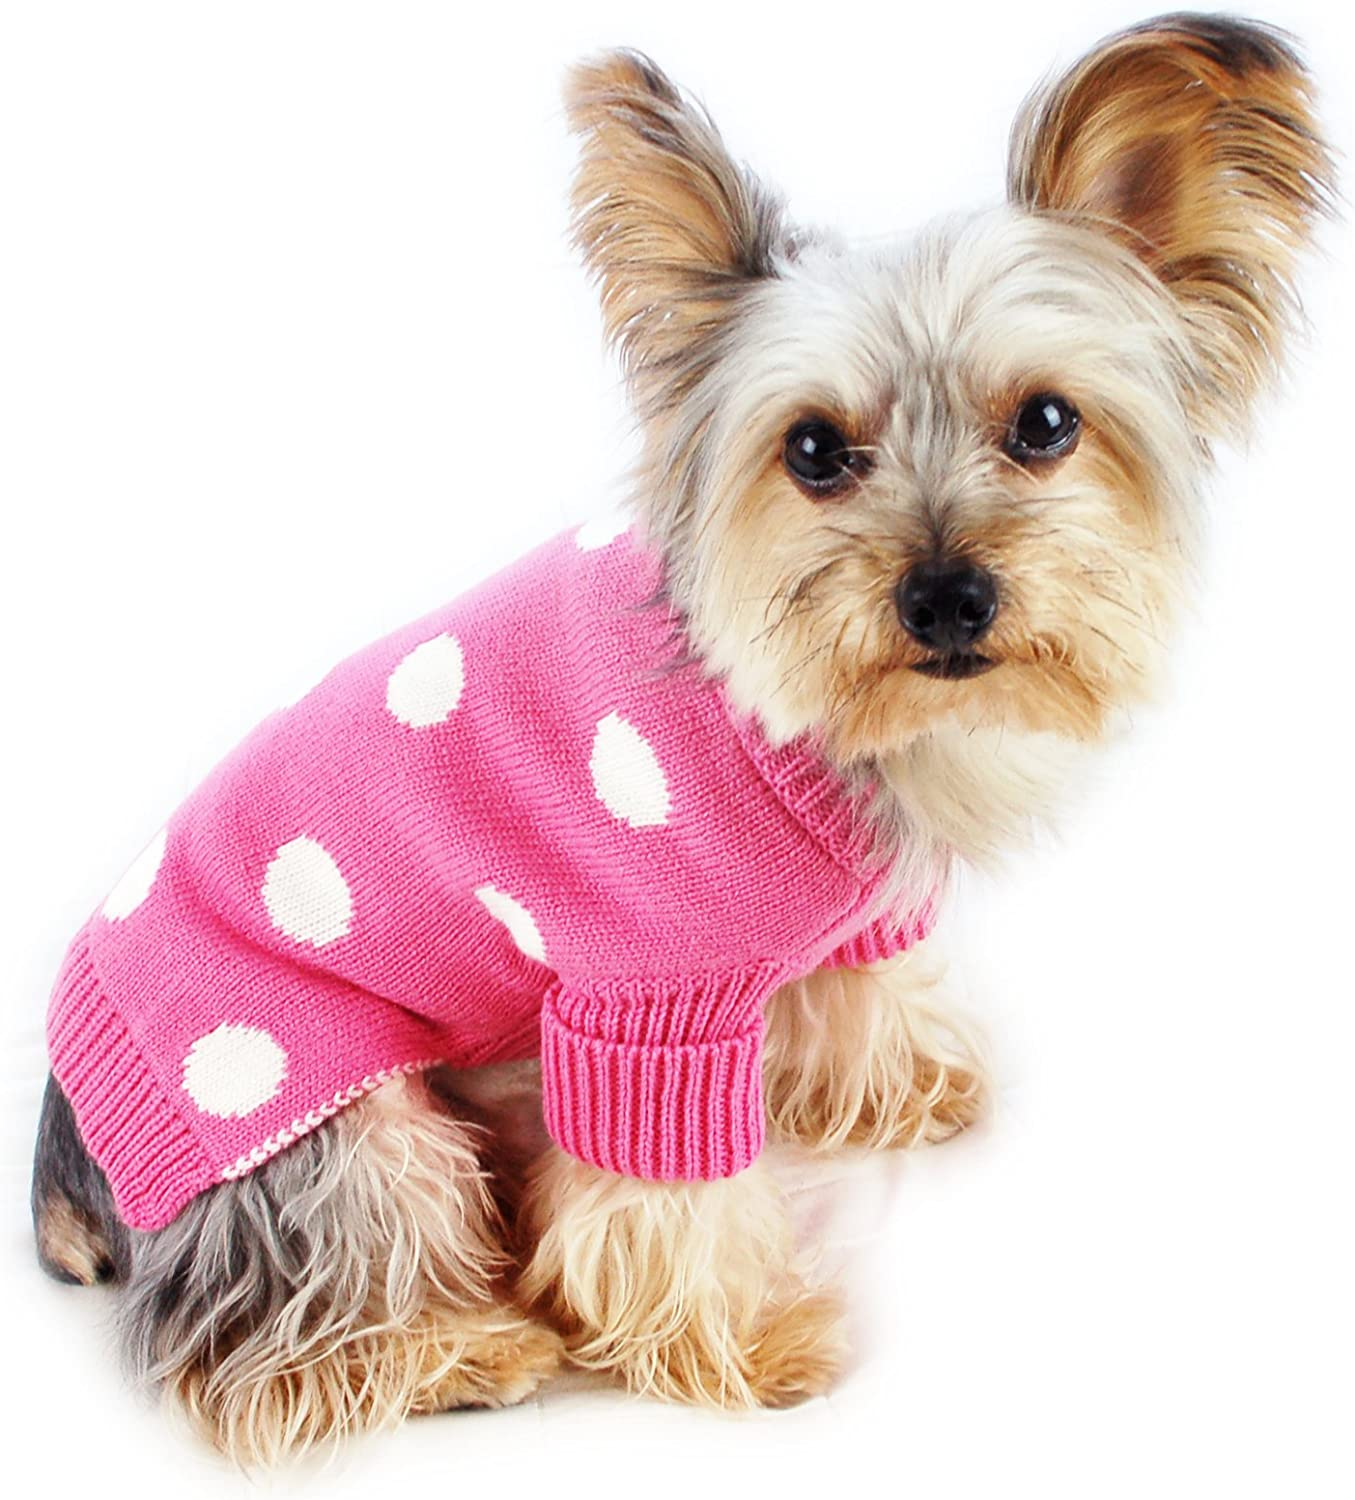 SALENEW very popular! Stinky G Polka Dot Dog Sweater 2021 autumn and winter new Neckline Rolled Col Multiple with